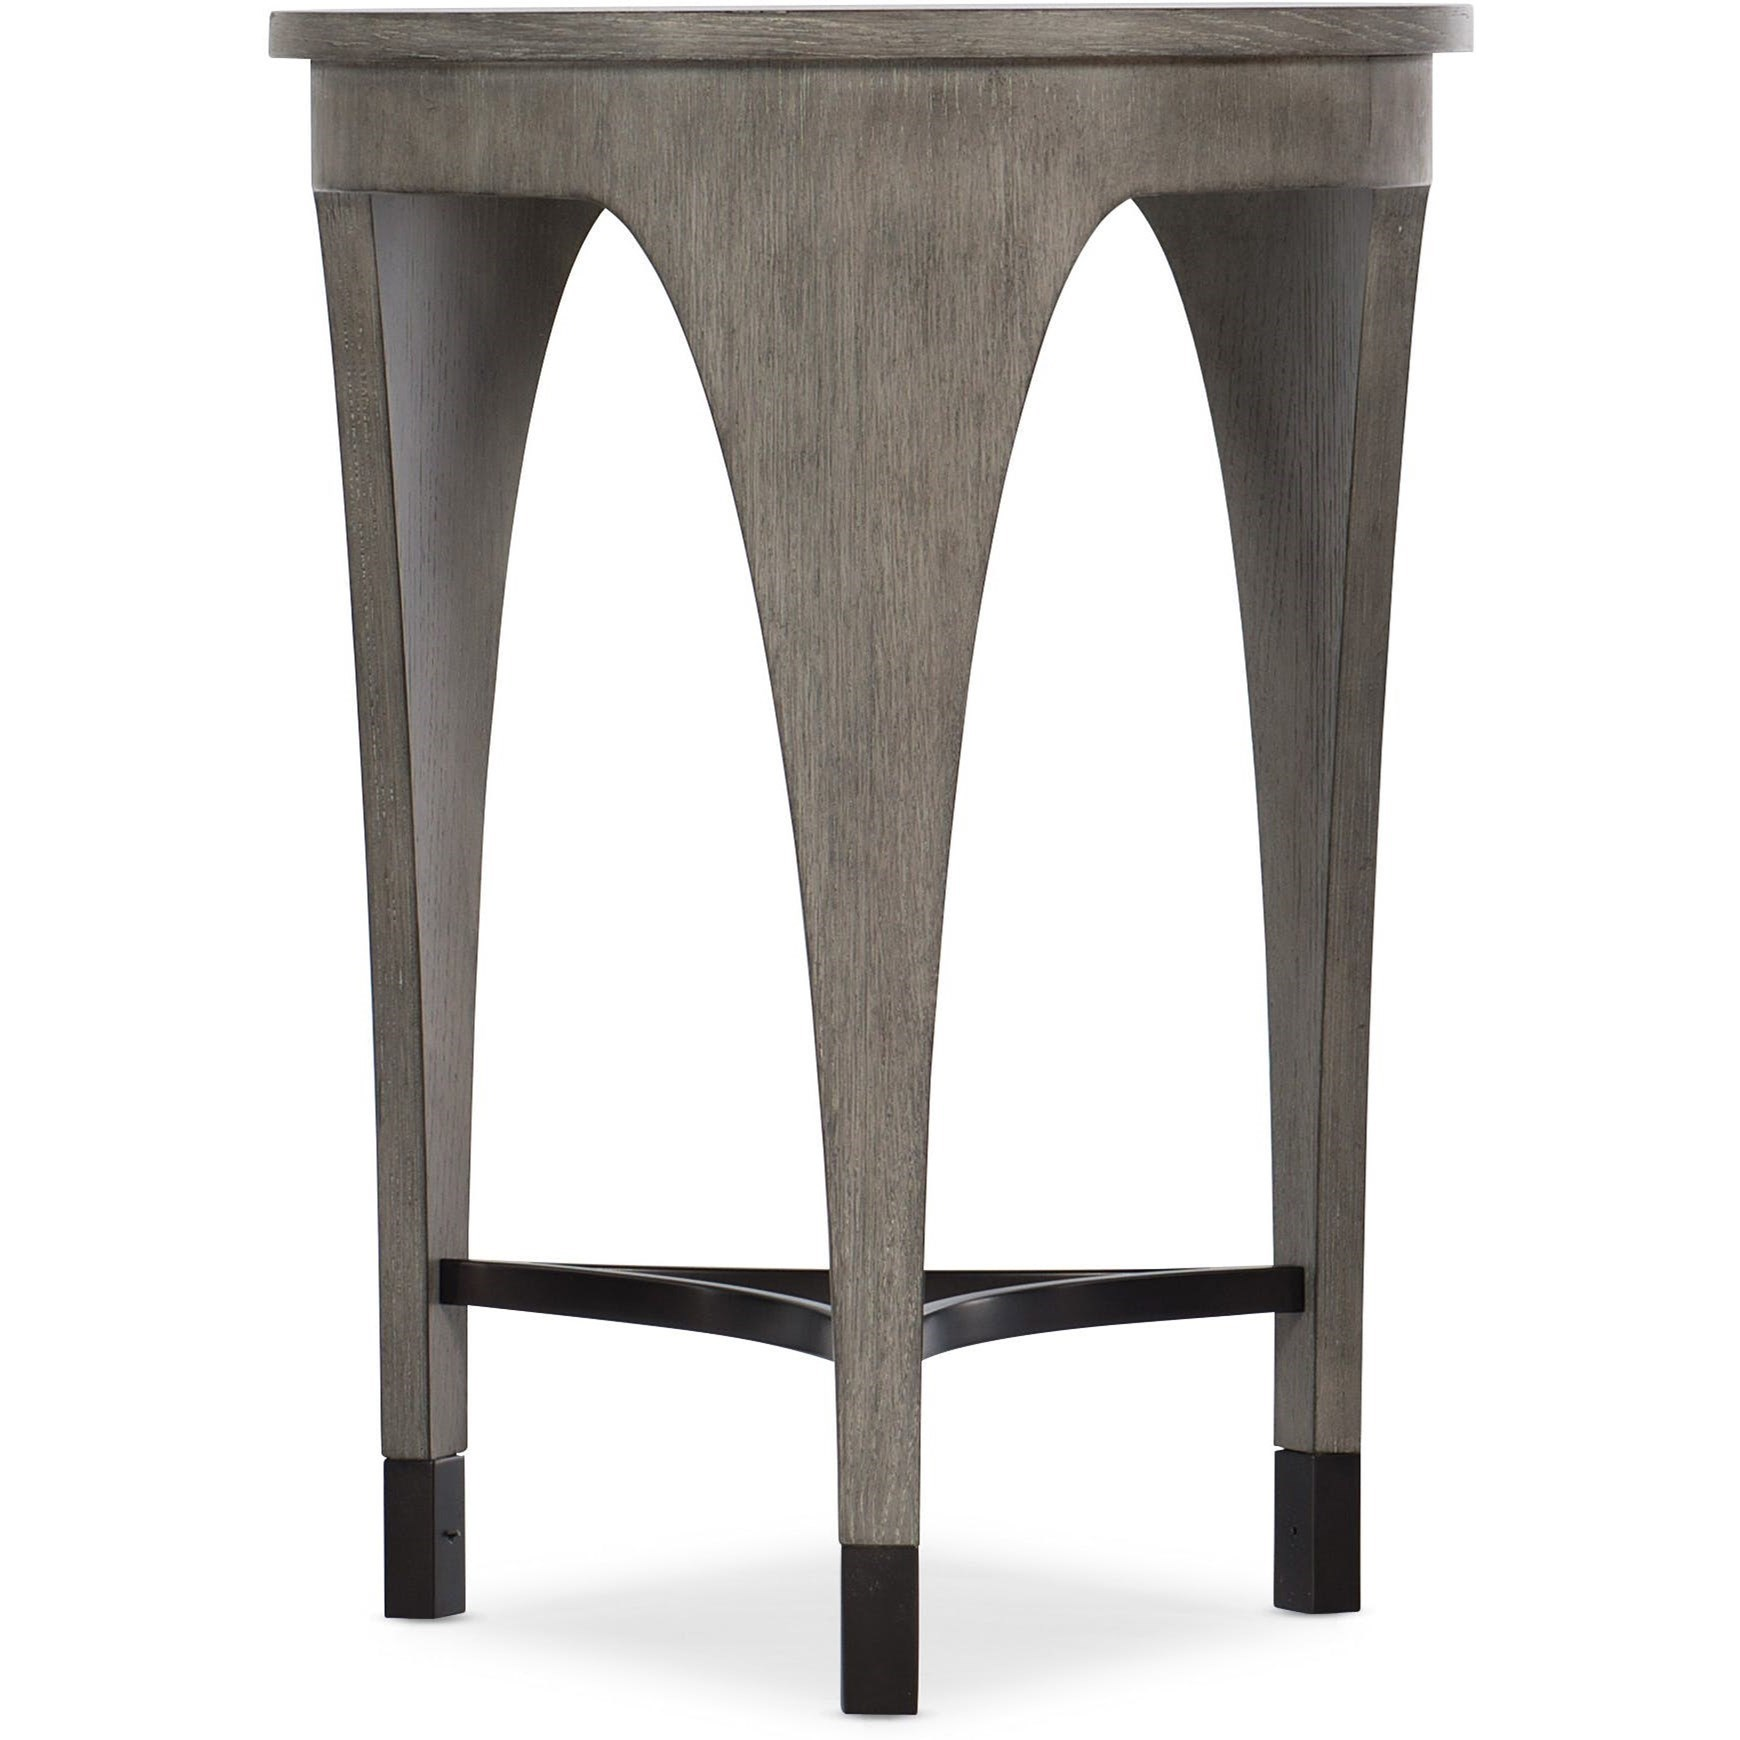 End Table For Living Room Living Room Accents Contemporary Endtable By Hooker Furniture At Suburban Furniture